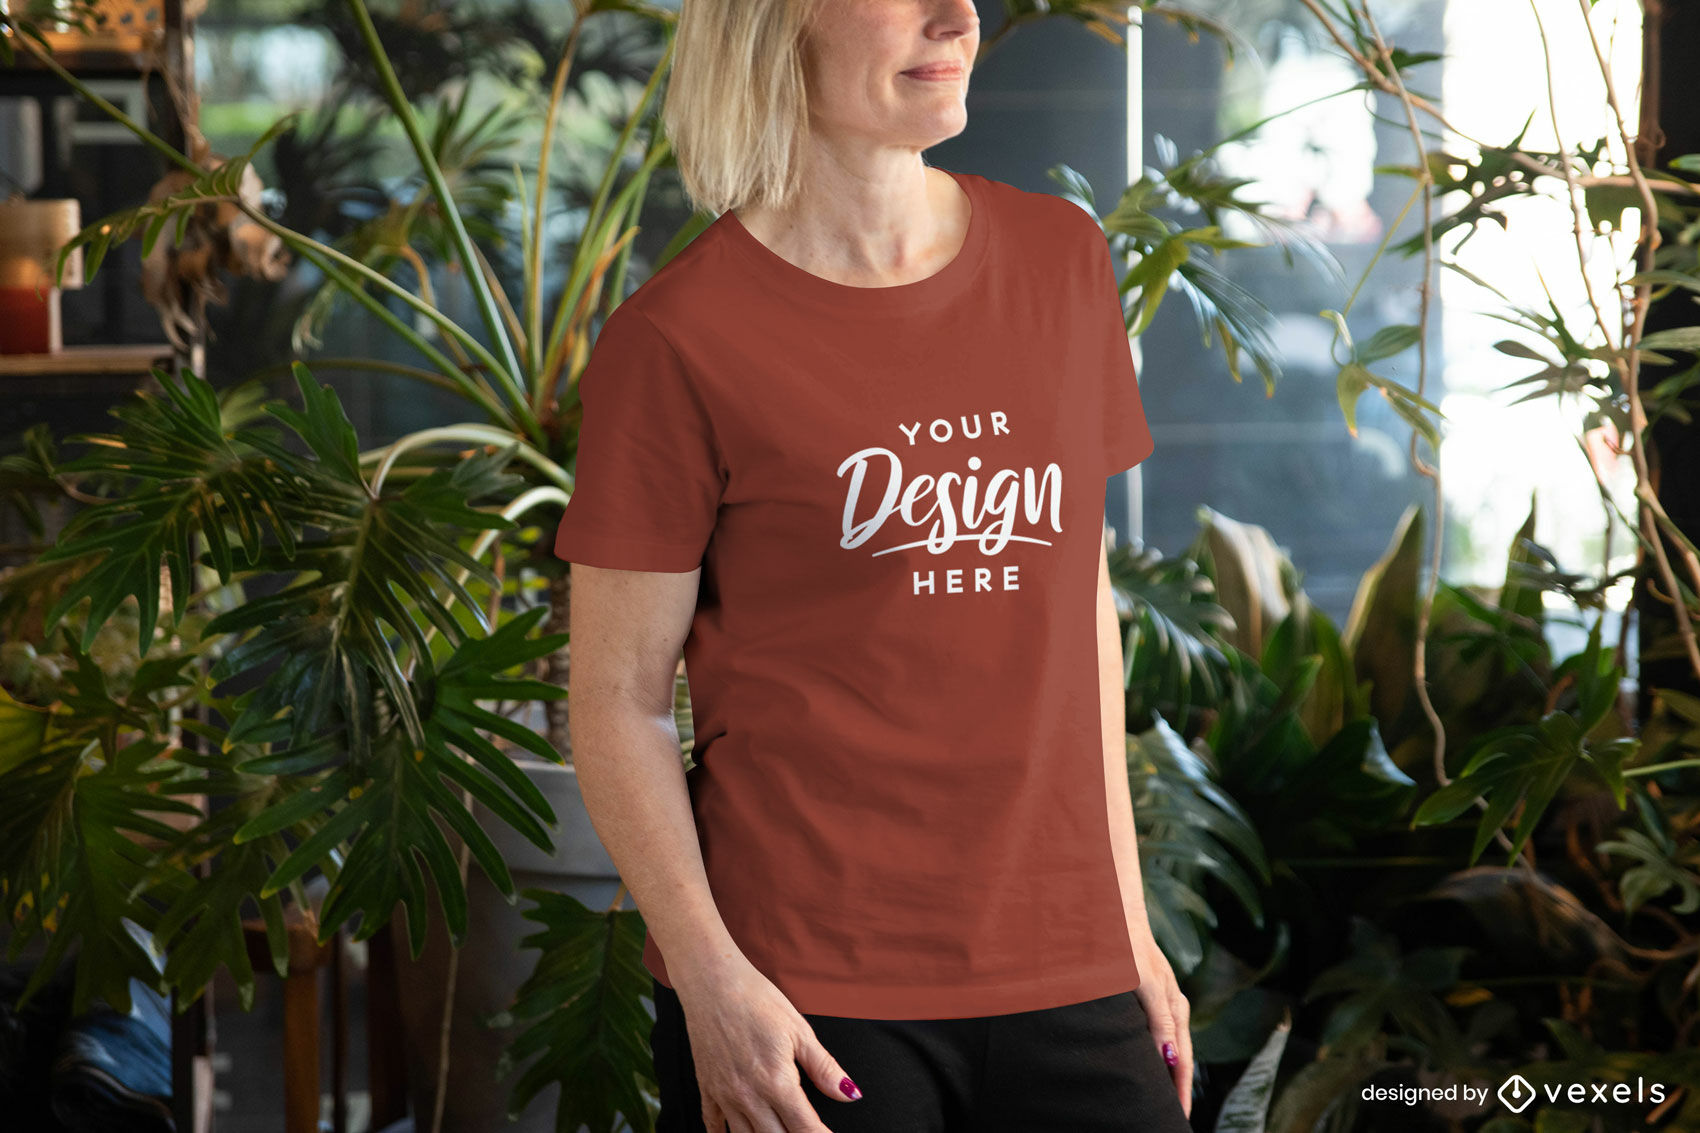 Woman in red t-shirt mockup in room with plants